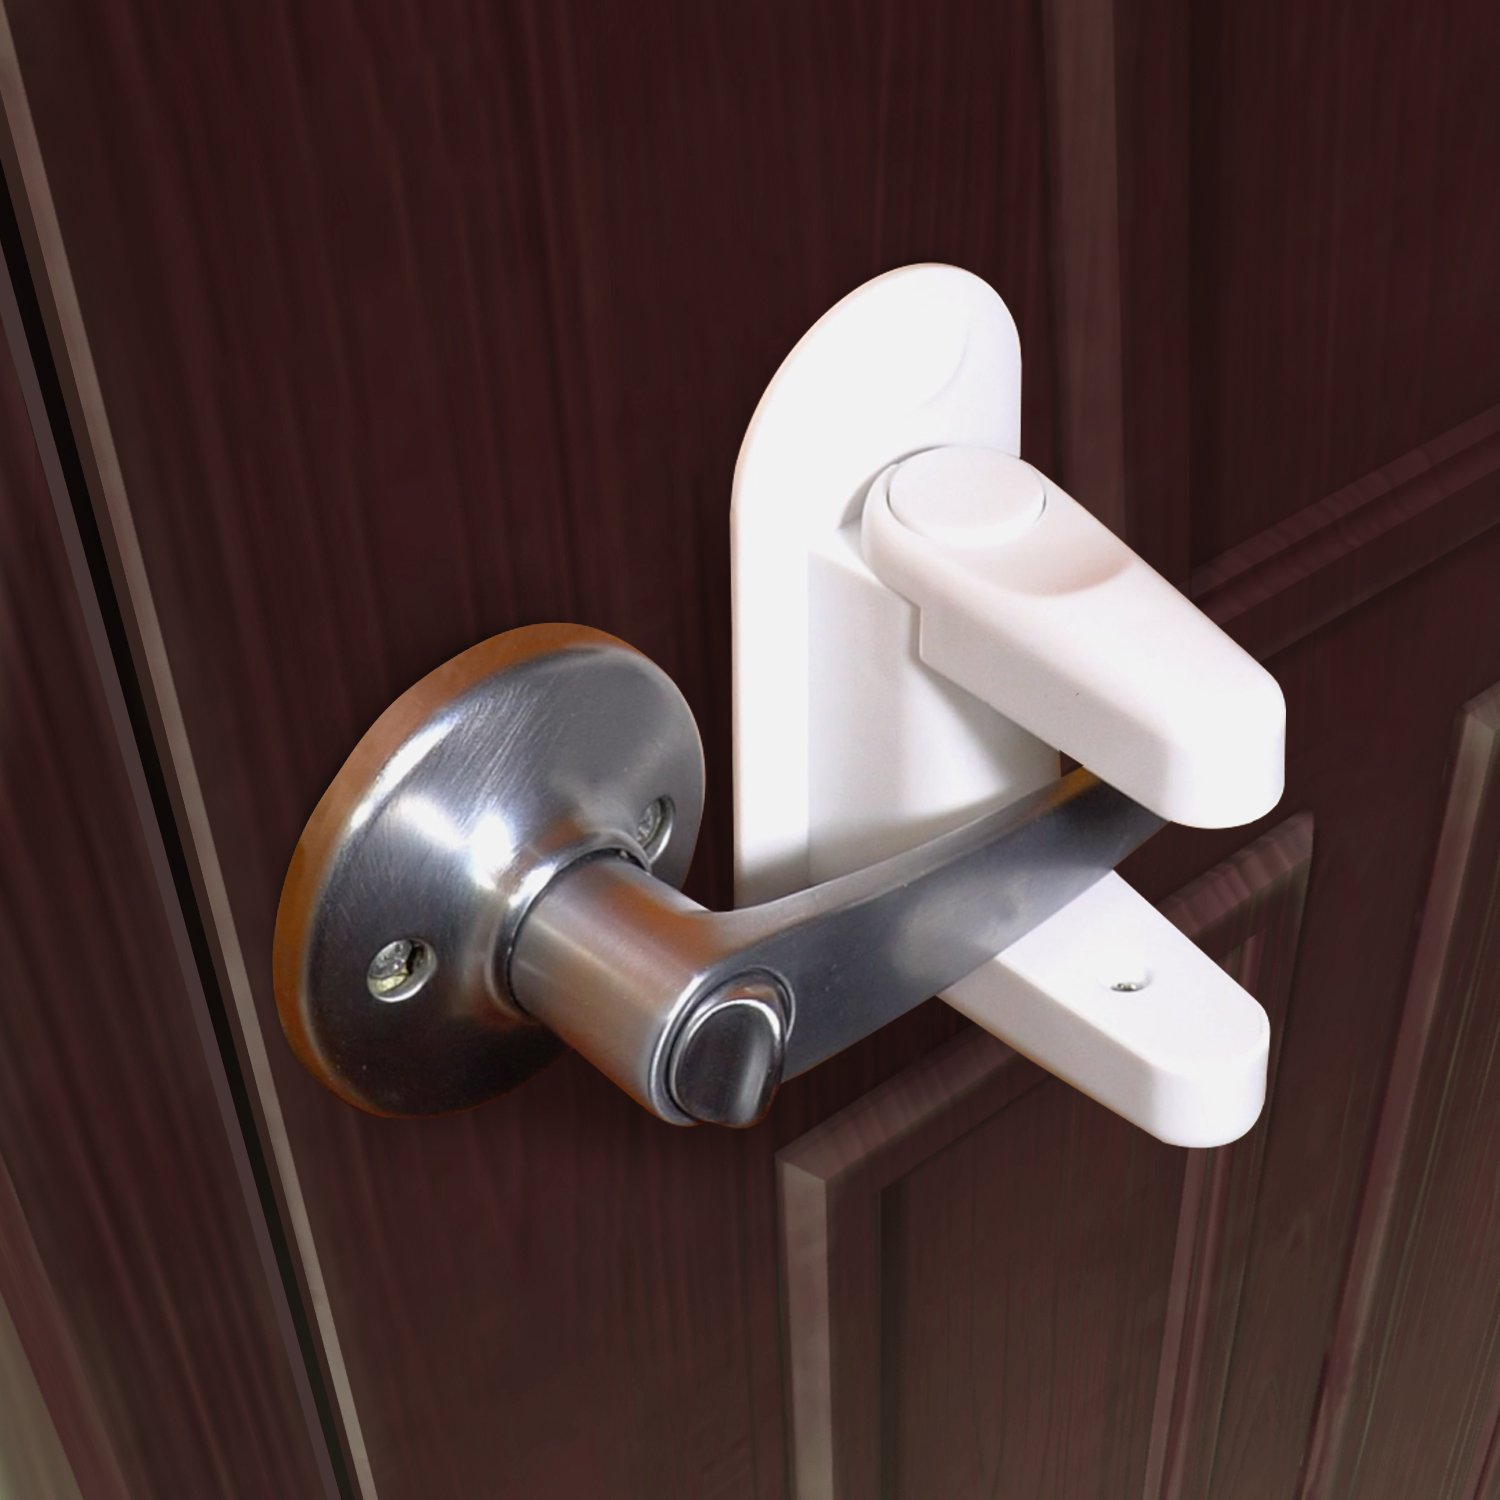 Safety 1st lever handle lock off white cream - Door handles with locks for bedrooms ...